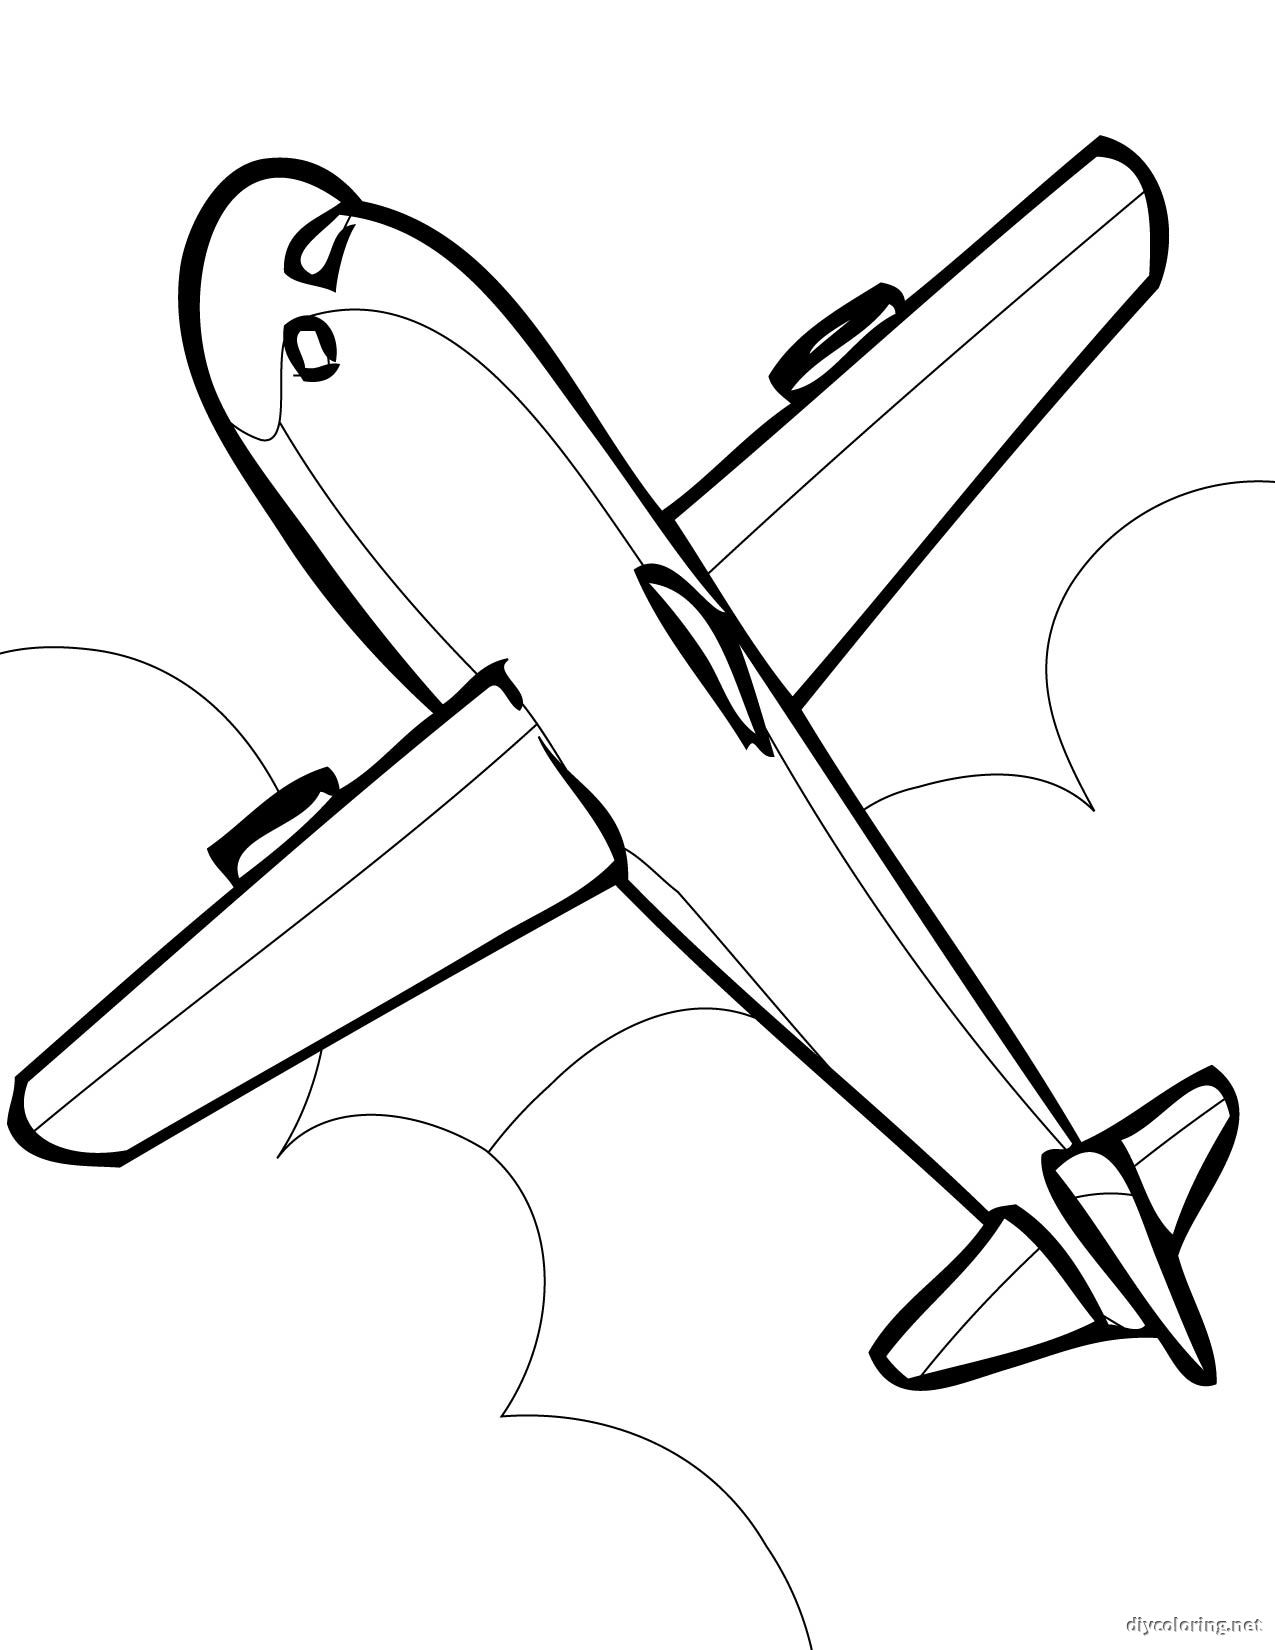 a for airplane coloring page photo - 1